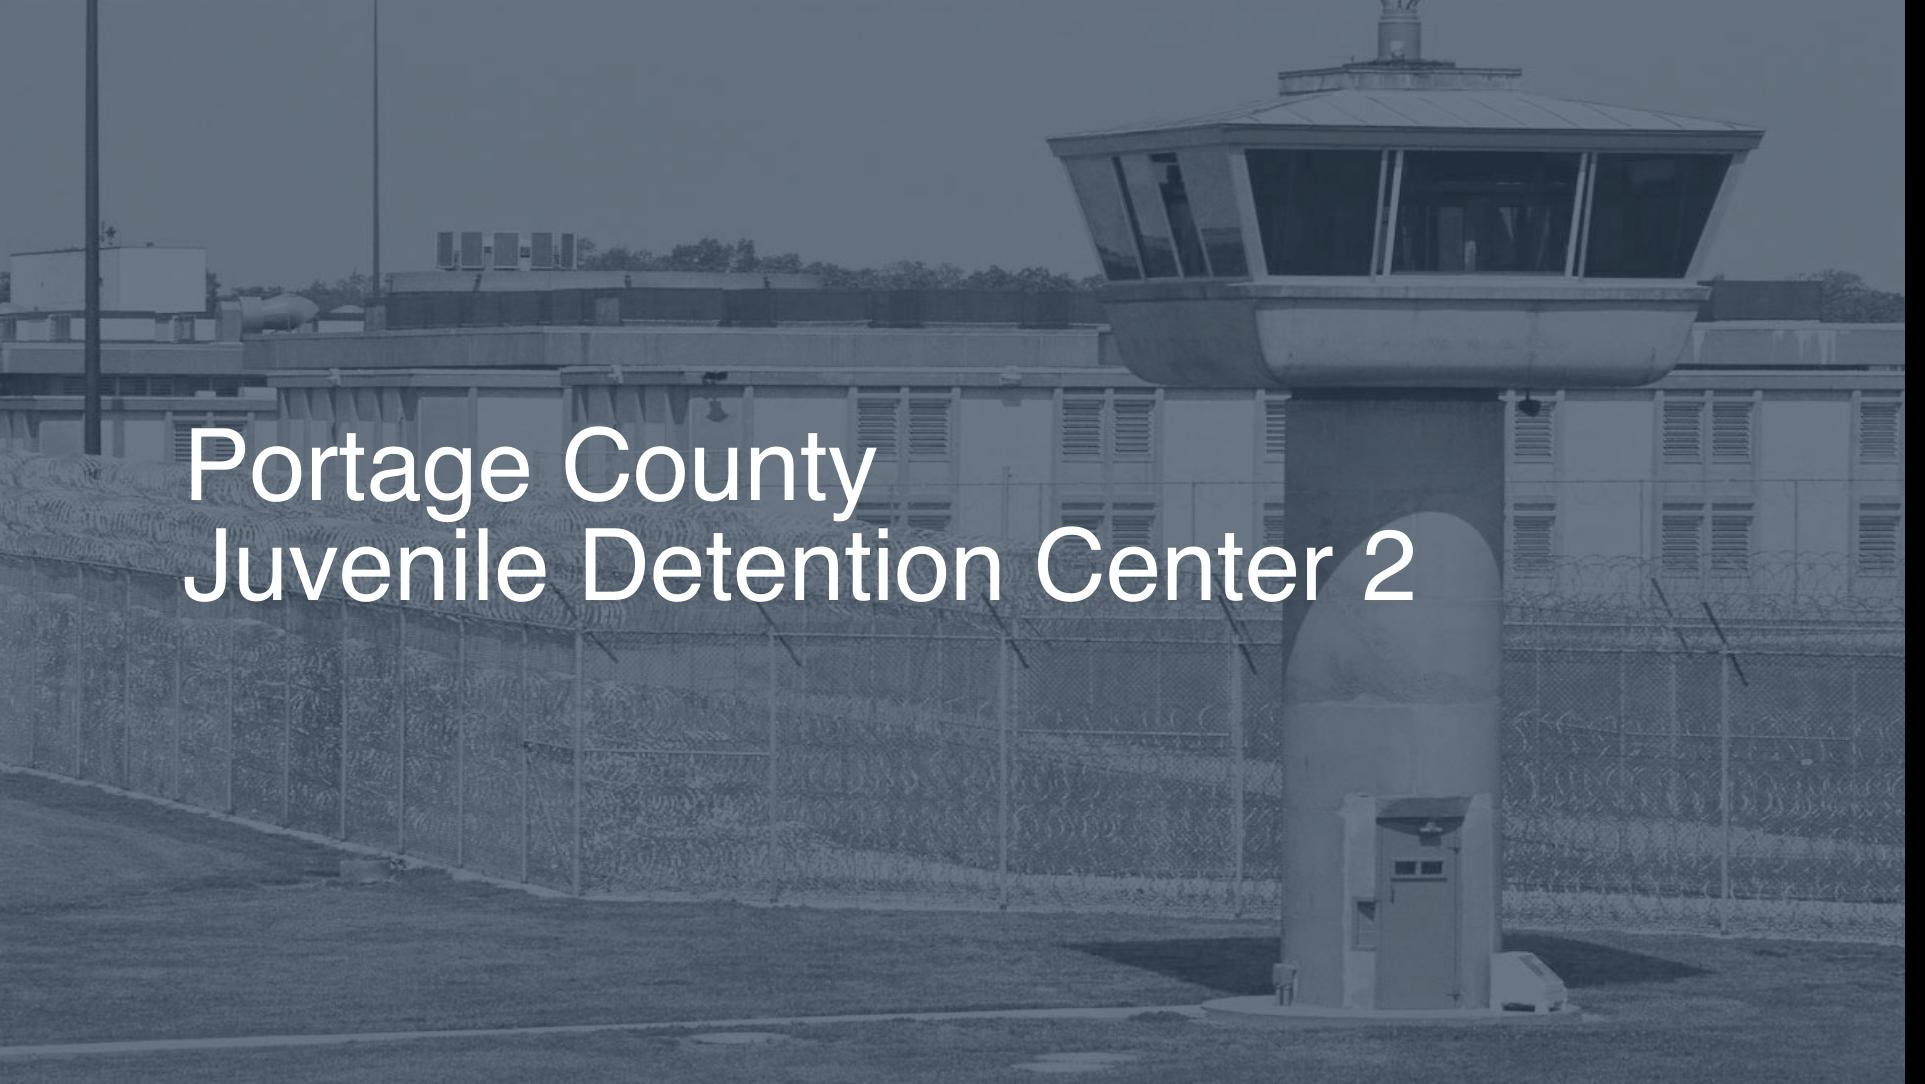 Portage County Juvenile Detention Center correctional facility picture